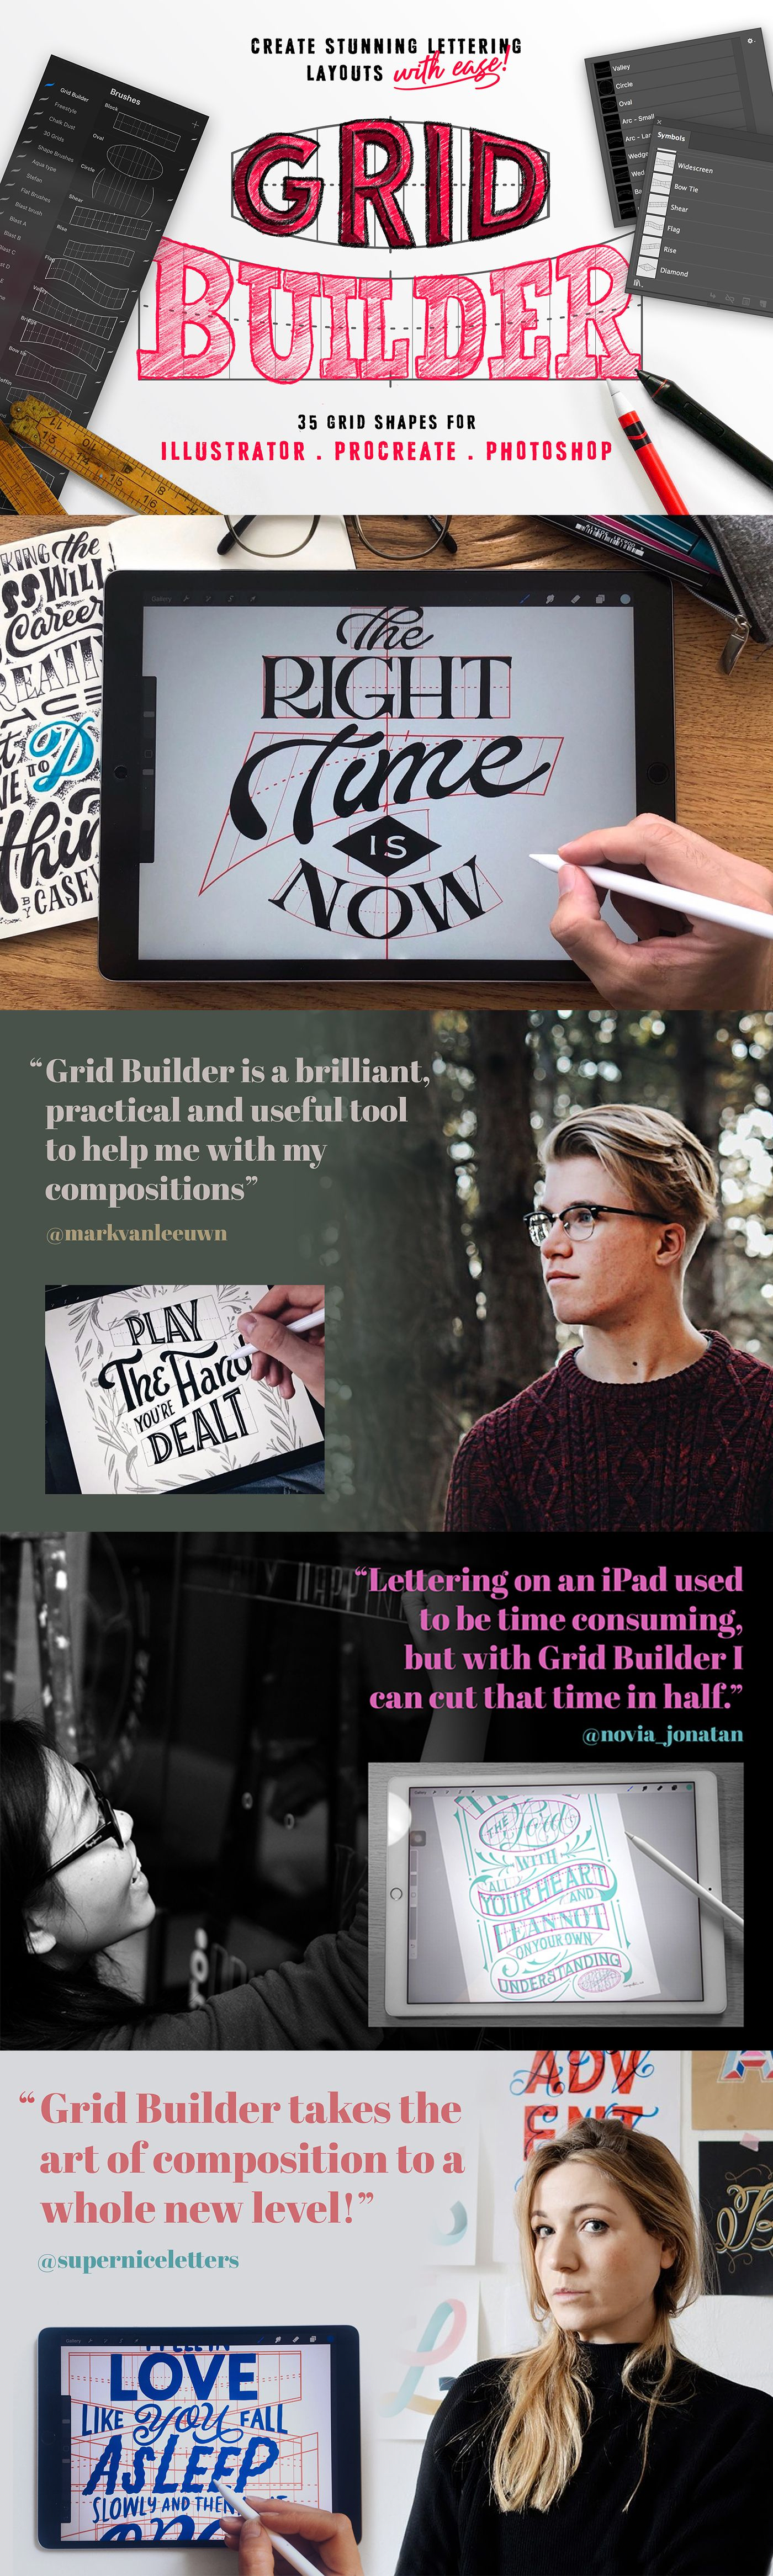 Photo of Grid Builder – Creating stunning lettering layouts has never been easier! For Pr…